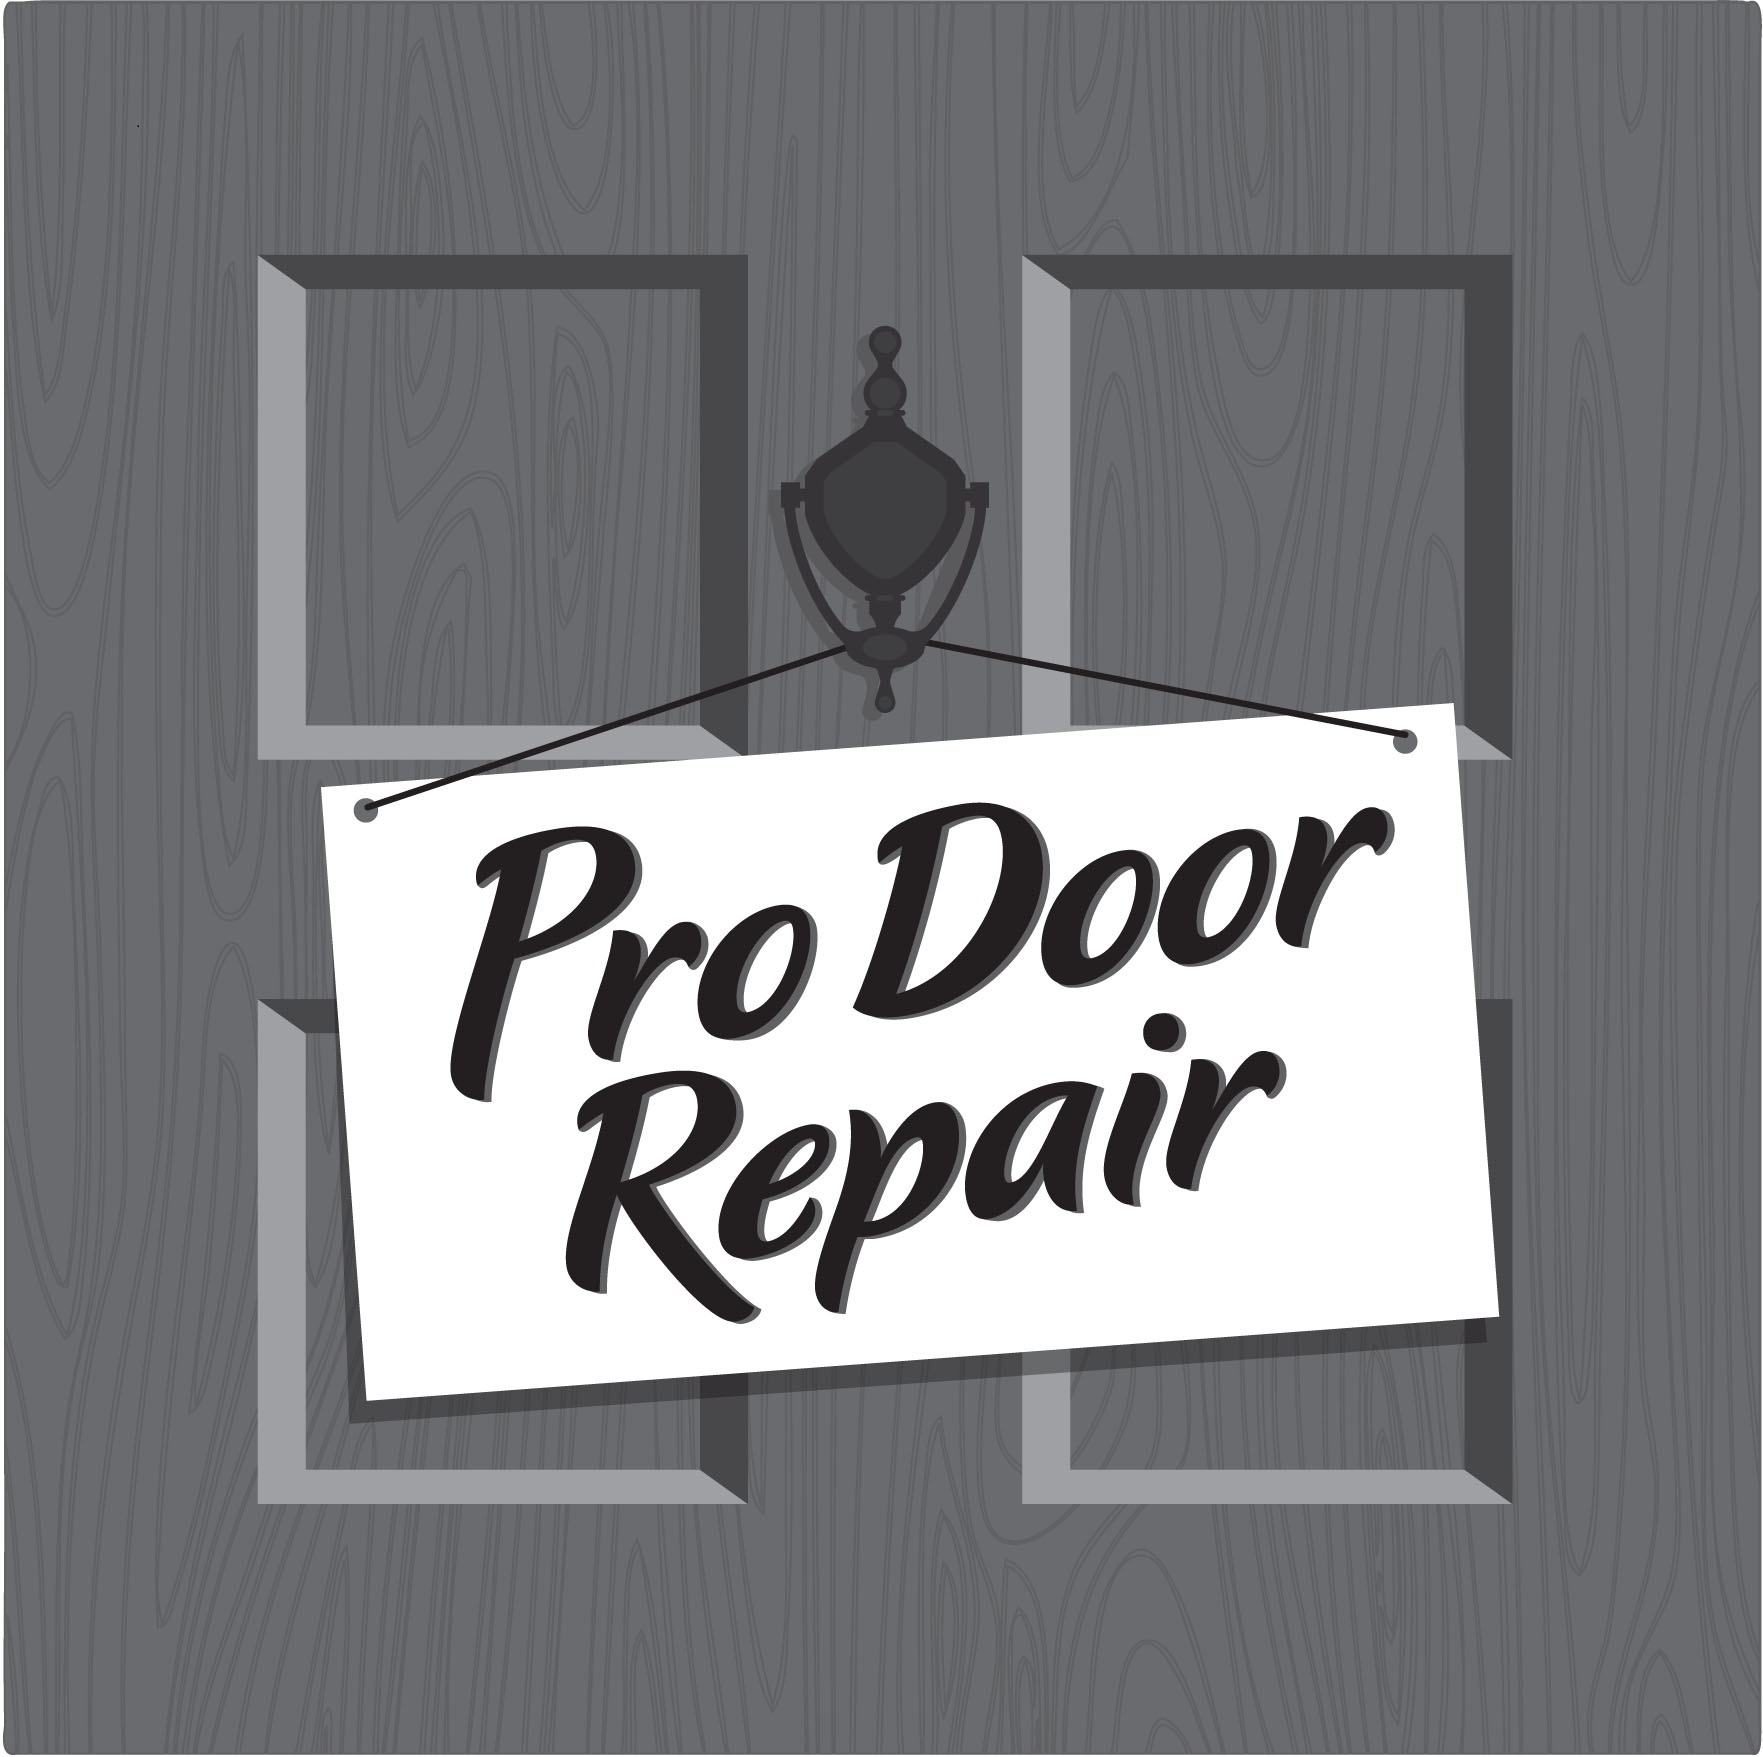 Pro Door Repair Coupons Near Me In Fort Worth 8coupons